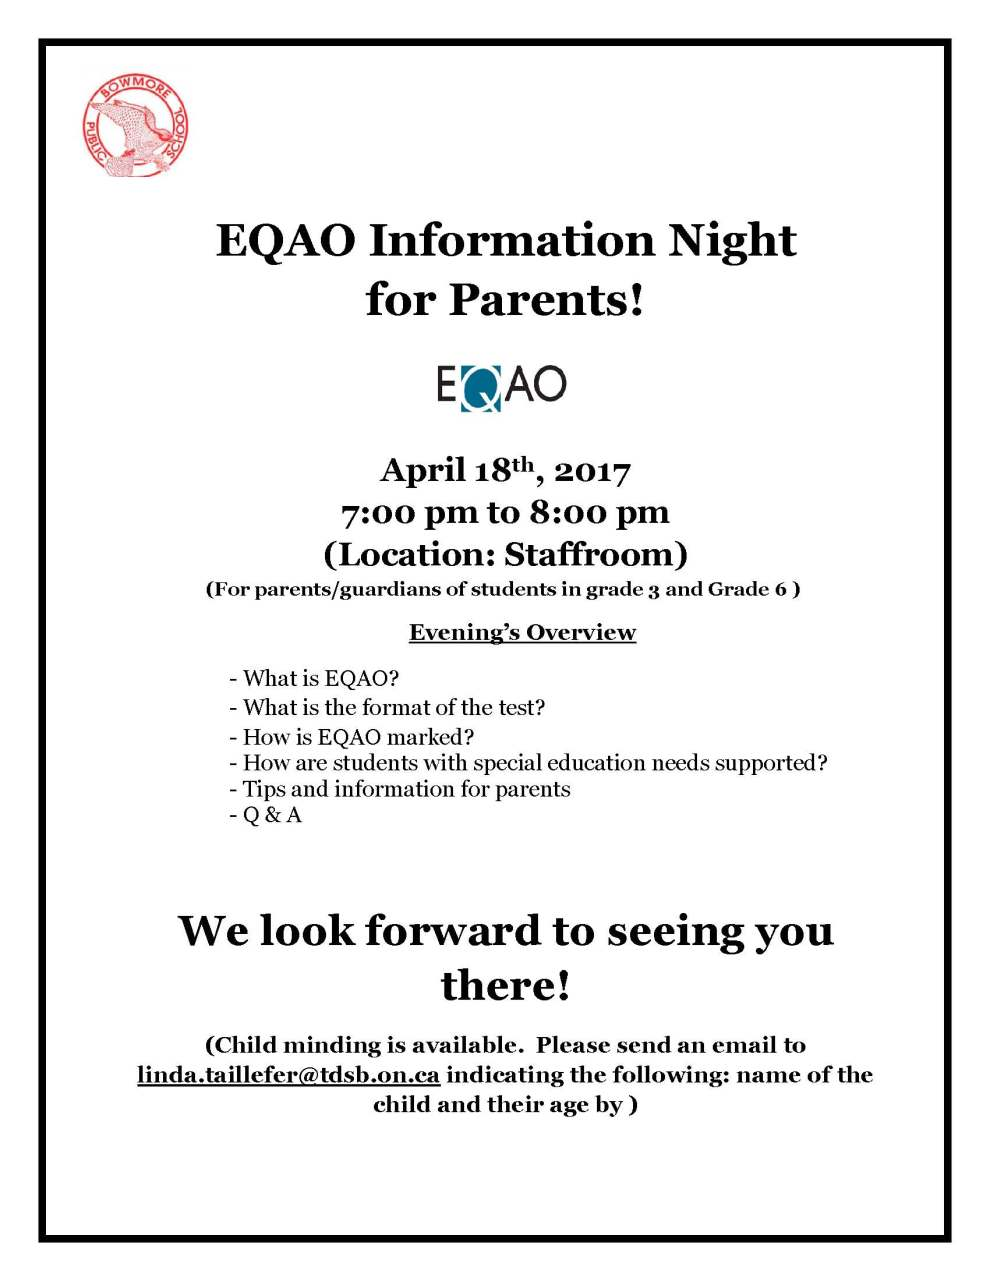 EQAO Flyer 2017